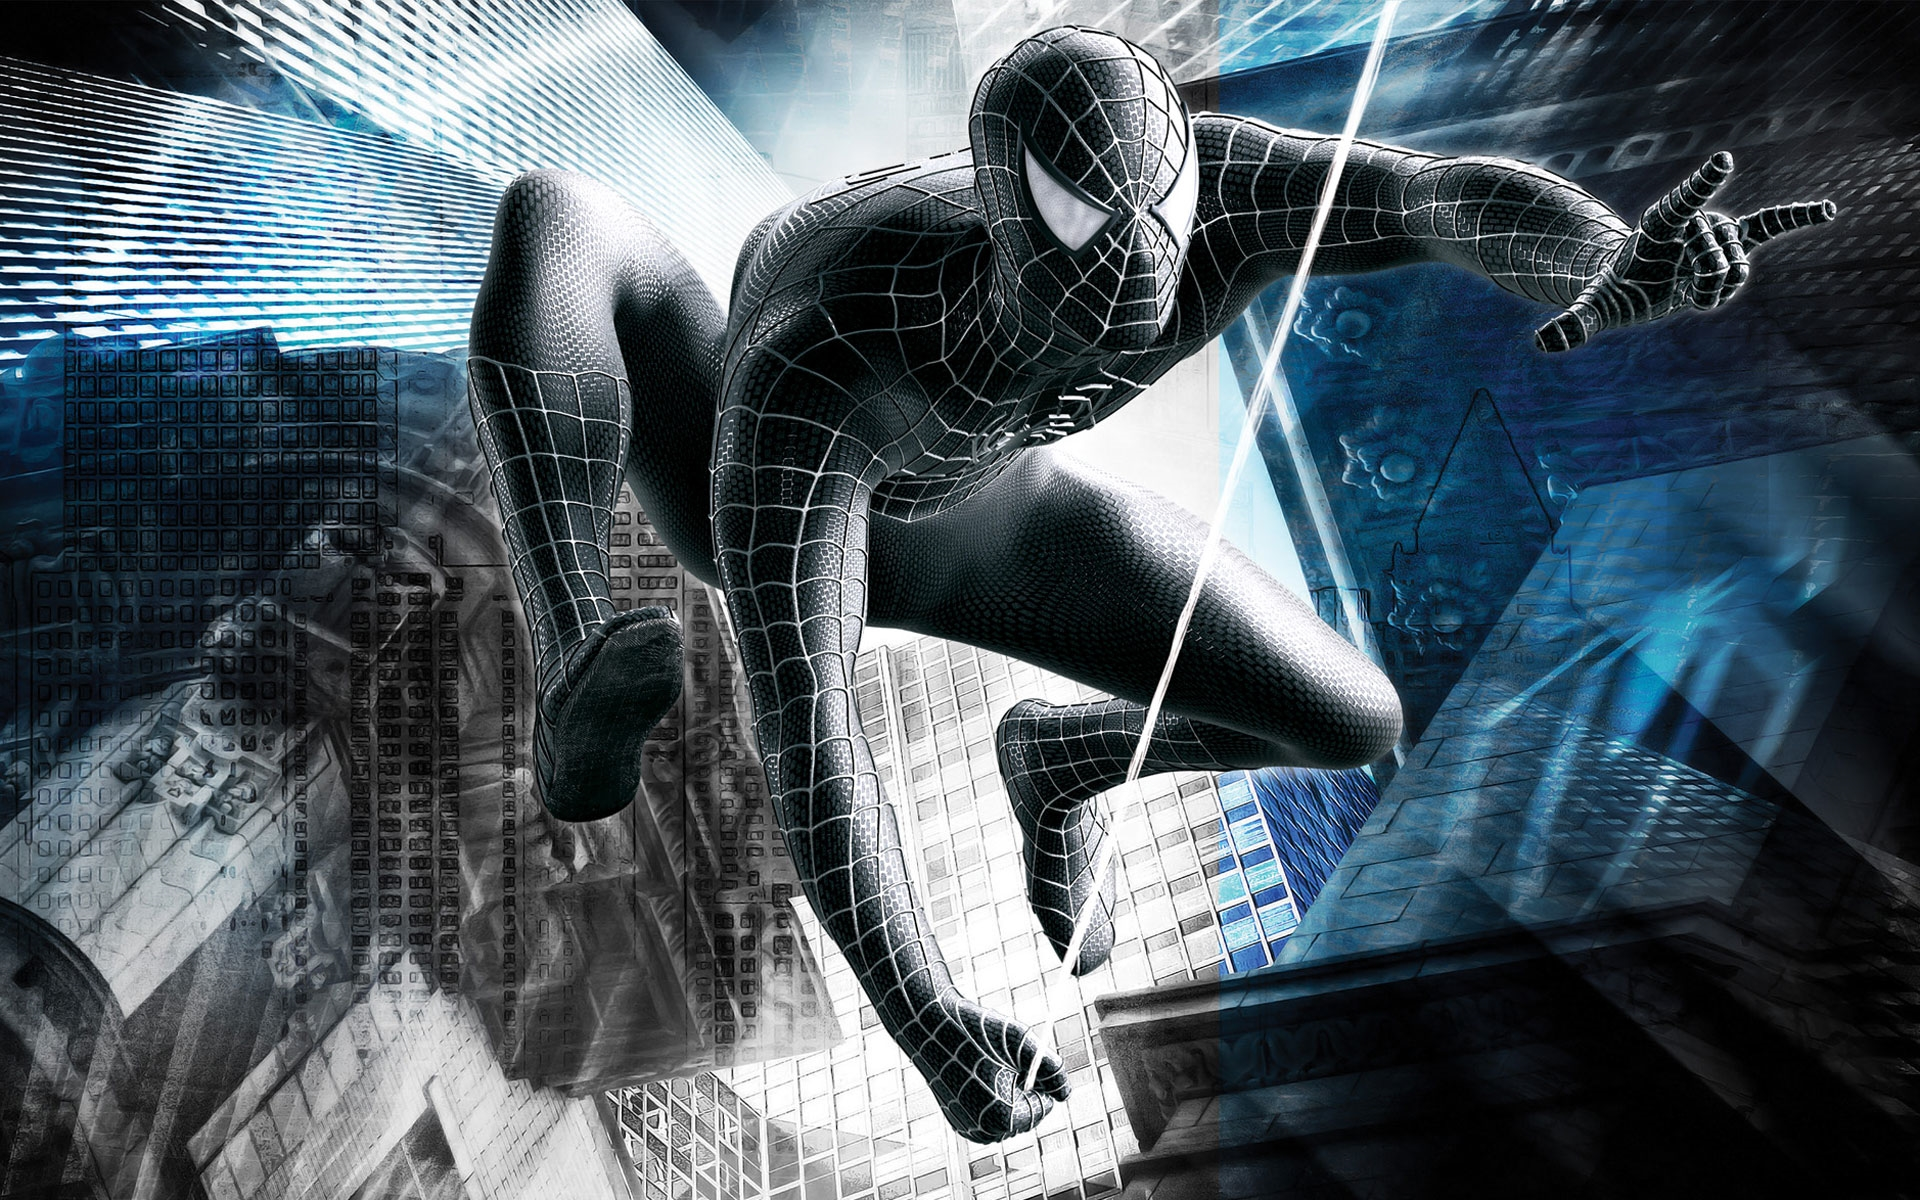 HD-Spiderman-Spiderman-Best-Pictures-Collection-wallpaper-wpc5805781